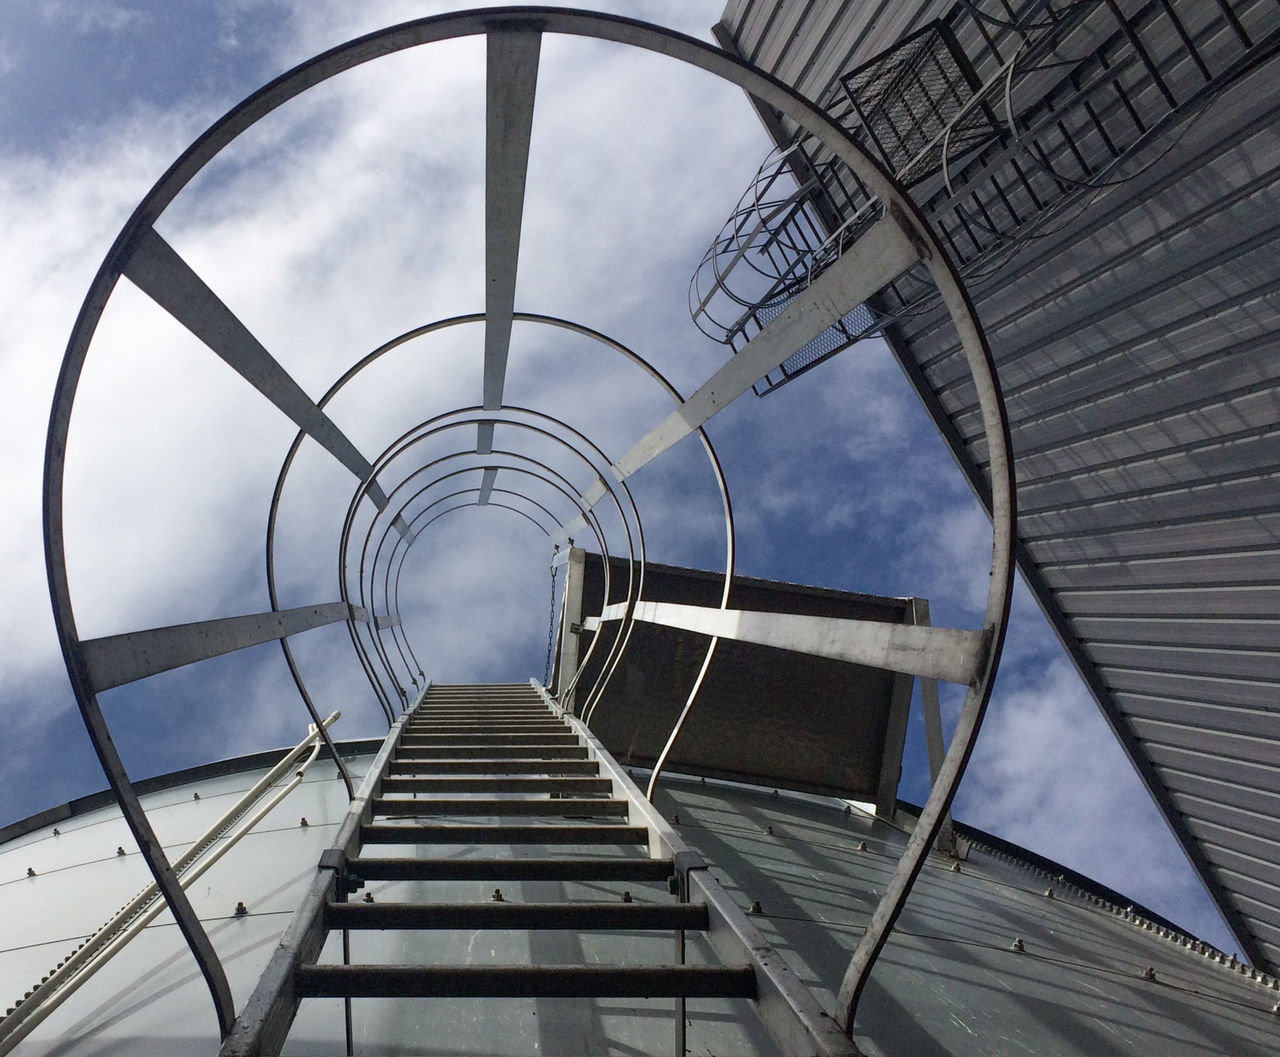 architecture, built structure, staircase, railing, sky, steps and staircases, low angle view, cloud - sky, metal, day, no people, building exterior, nature, spiral, arch, outdoors, building, directly below, ladder, steel